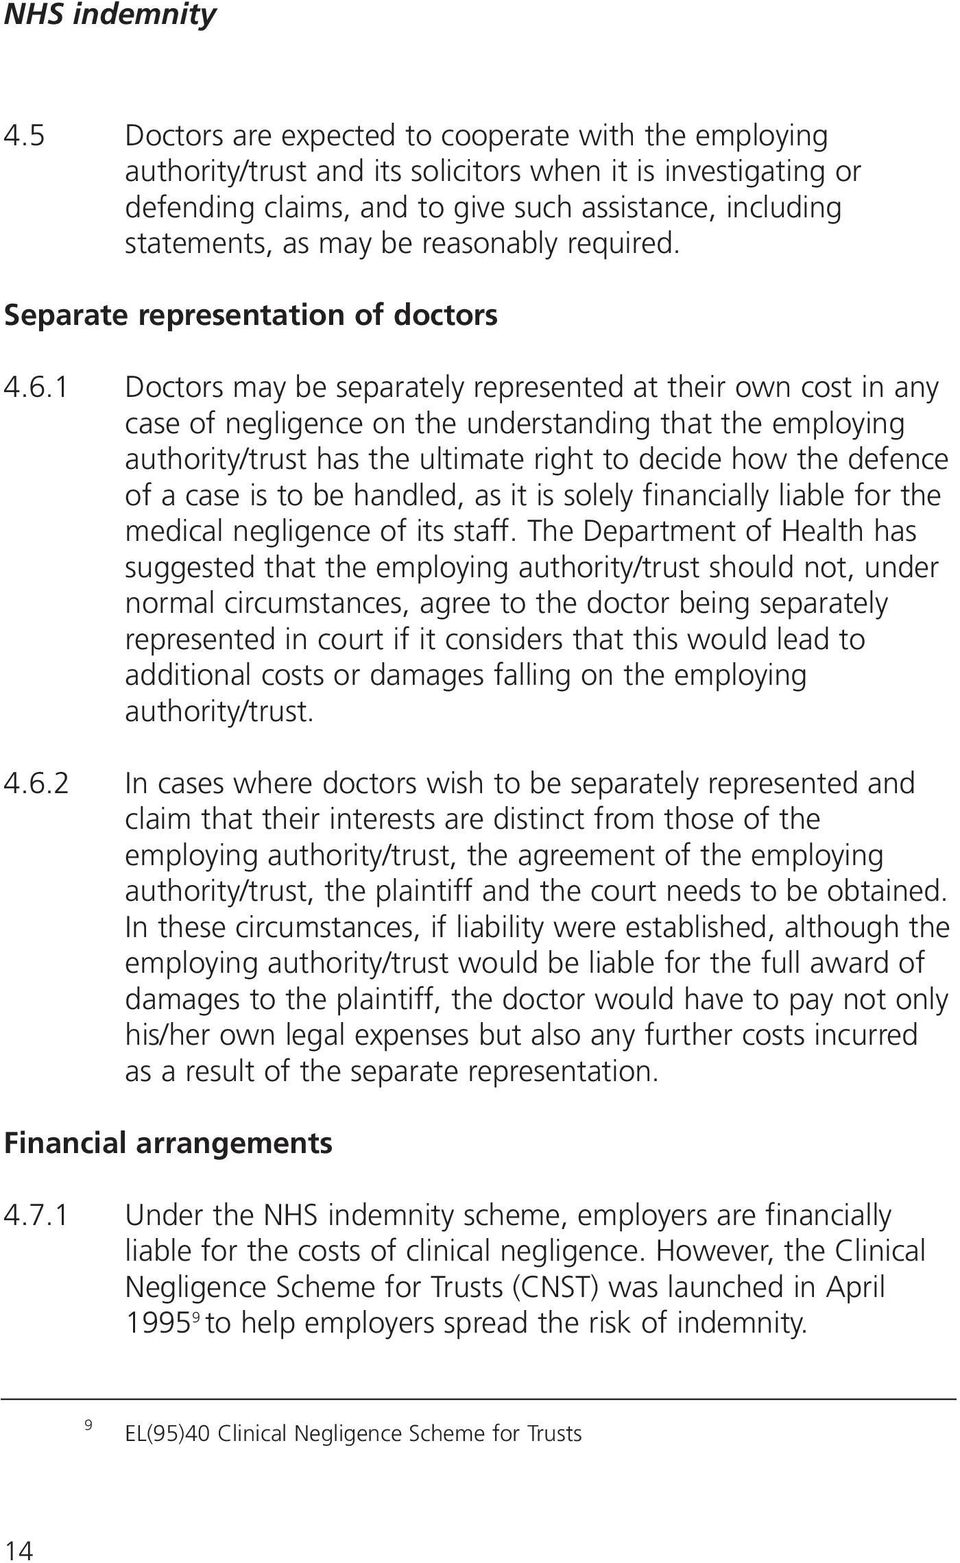 1 Doctors may be separately represented at their own cost in any case of negligence on the understanding that the employing authority/trust has the ultimate right to decide how the defence of a case